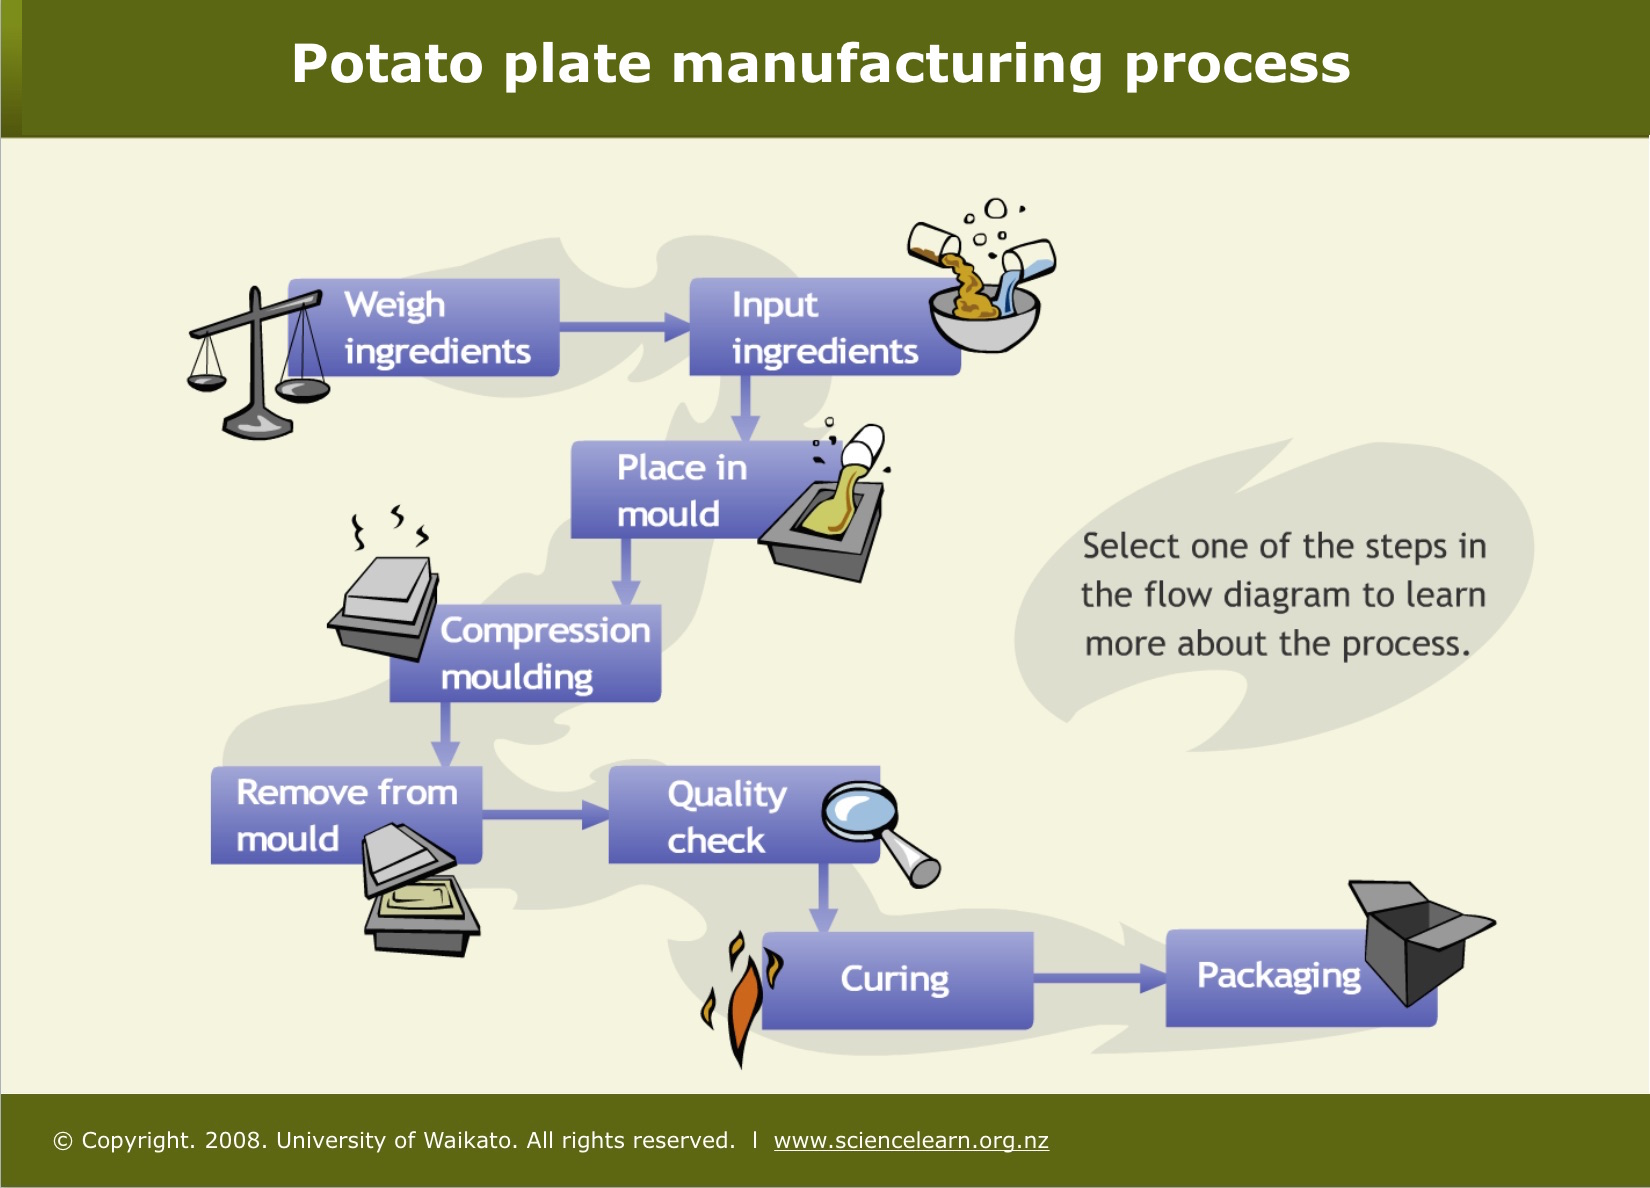 Potato plate manufacturing process science learning hub potatopak now rebranded as earth pack makes potato plates at a factory in blenheim new zealand click on the flow diagram to see the steps involved in ccuart Choice Image